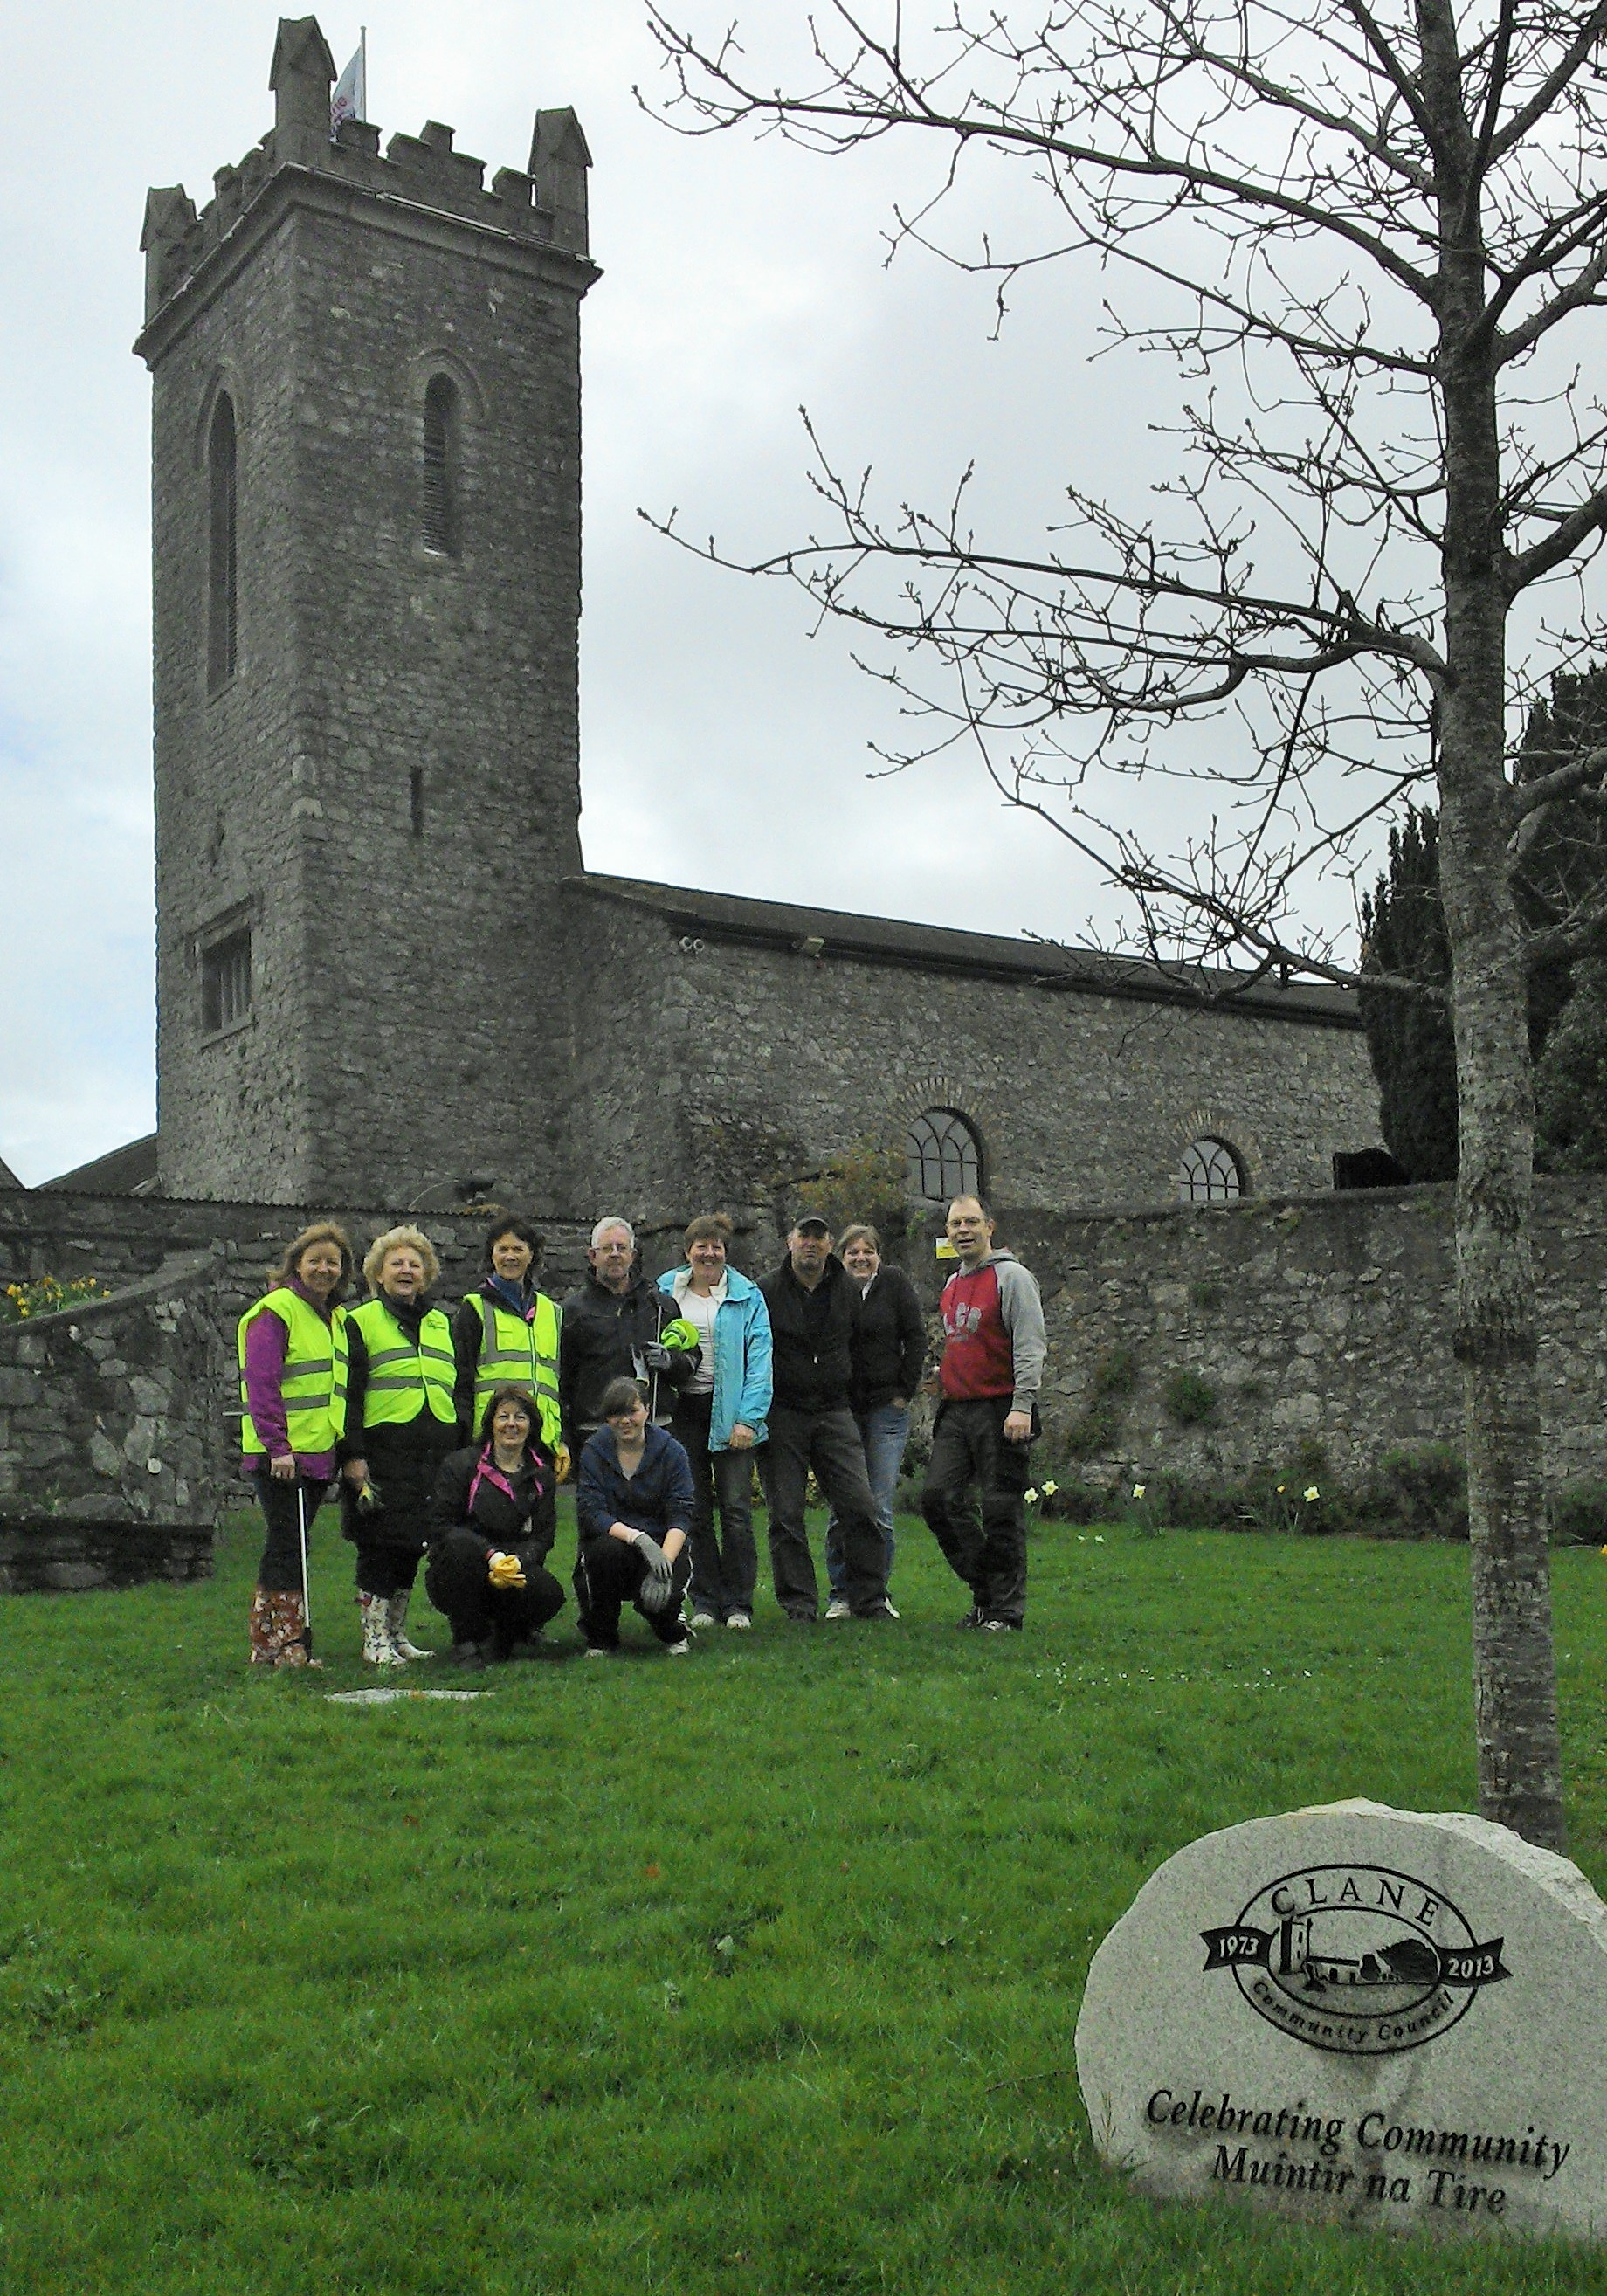 Some of the Spring Clean volunteers 2014